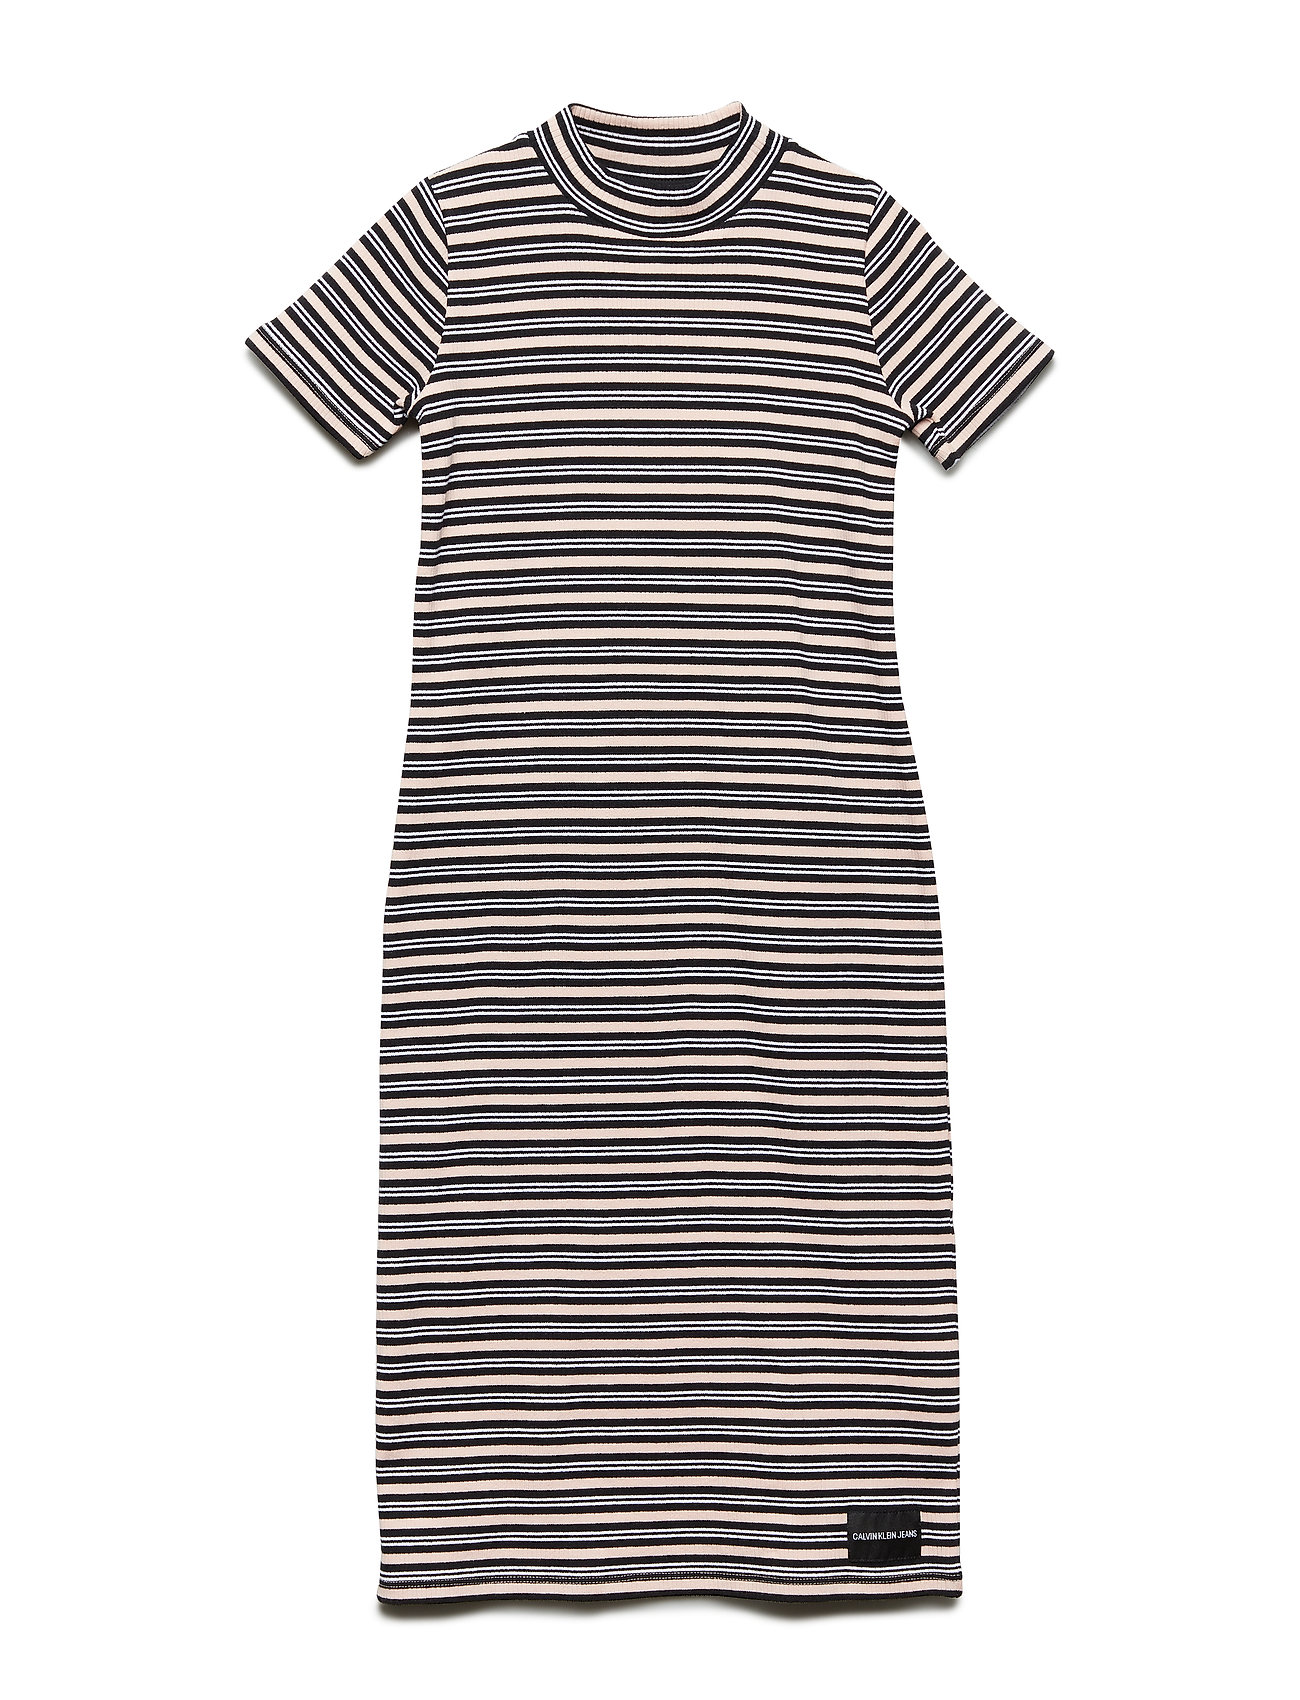 Calvin Klein COTTON RIB STRIPE MA - BLACK BEAUTY